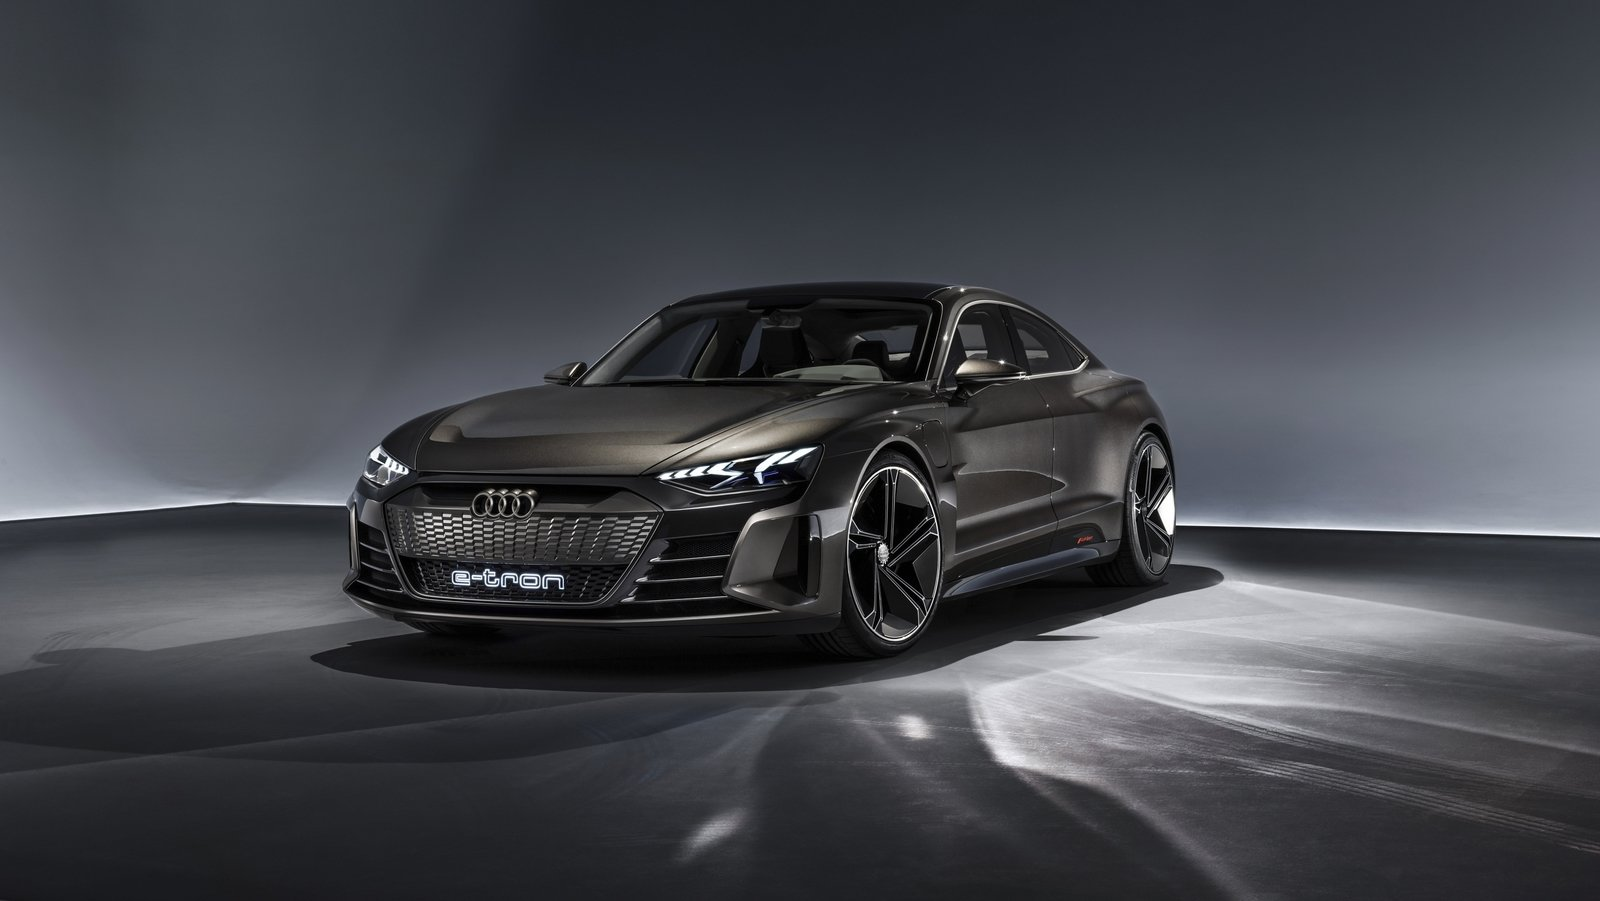 Car Games Wallpapers Hd 1080p The Audi E Tron Gt Concept S Appearance In Avengers 4